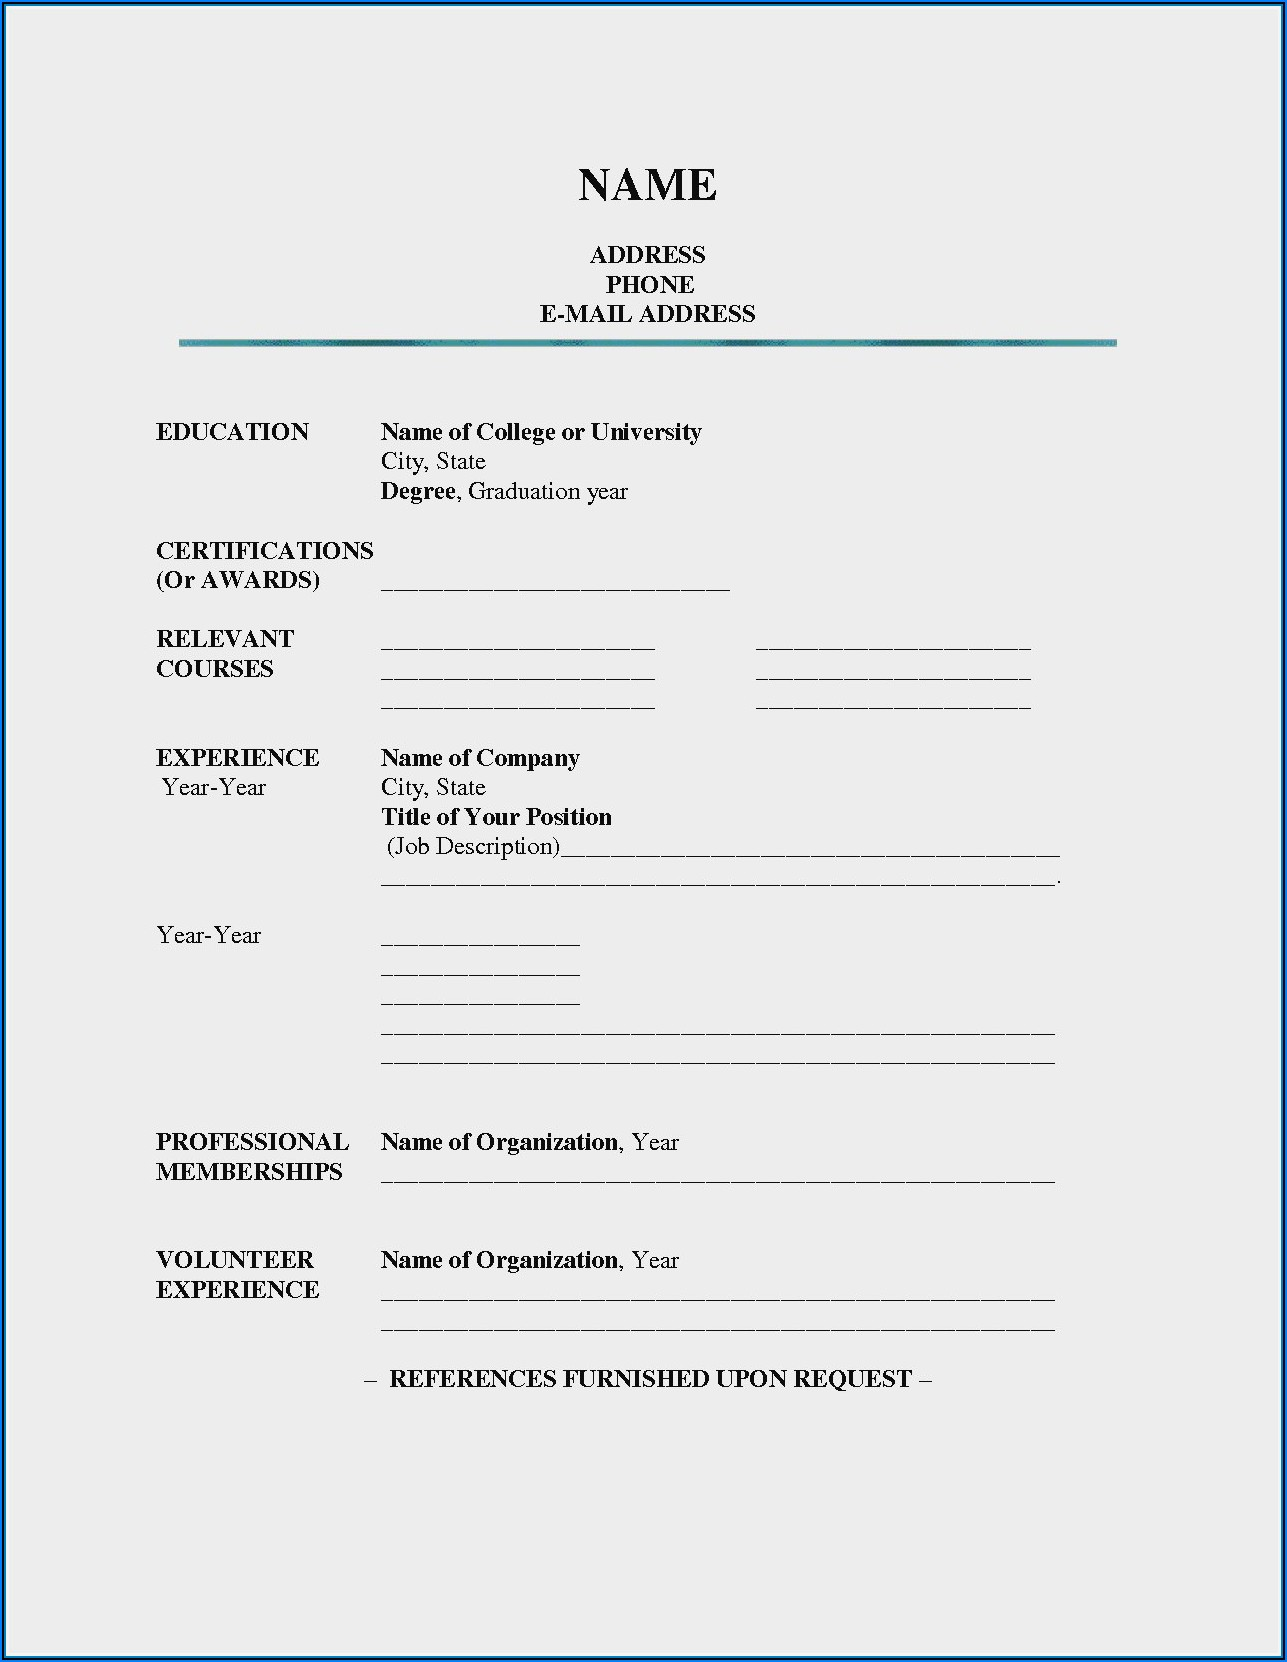 Resume Blank Form Sample